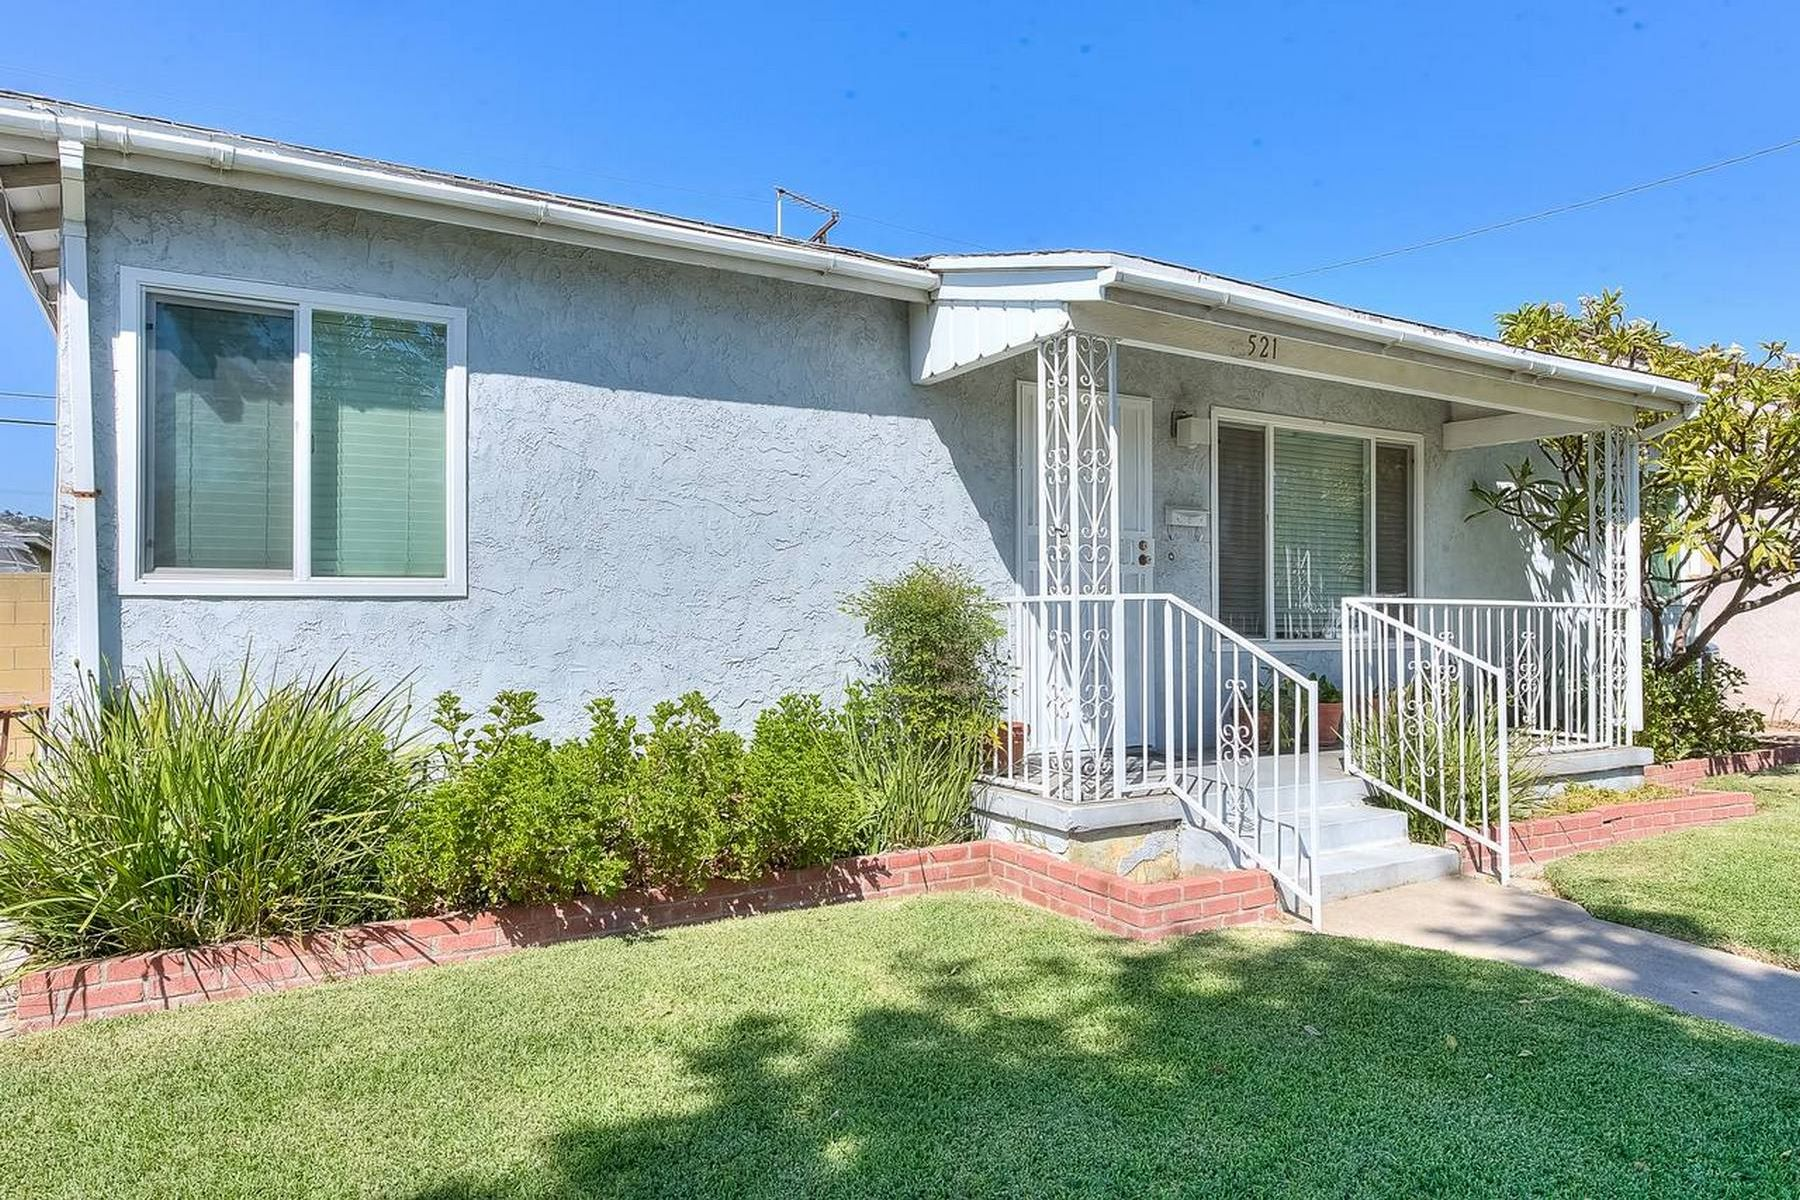 Single Family Homes for Sale at 521 W Gleason Street Monterey Park, California 91754 United States